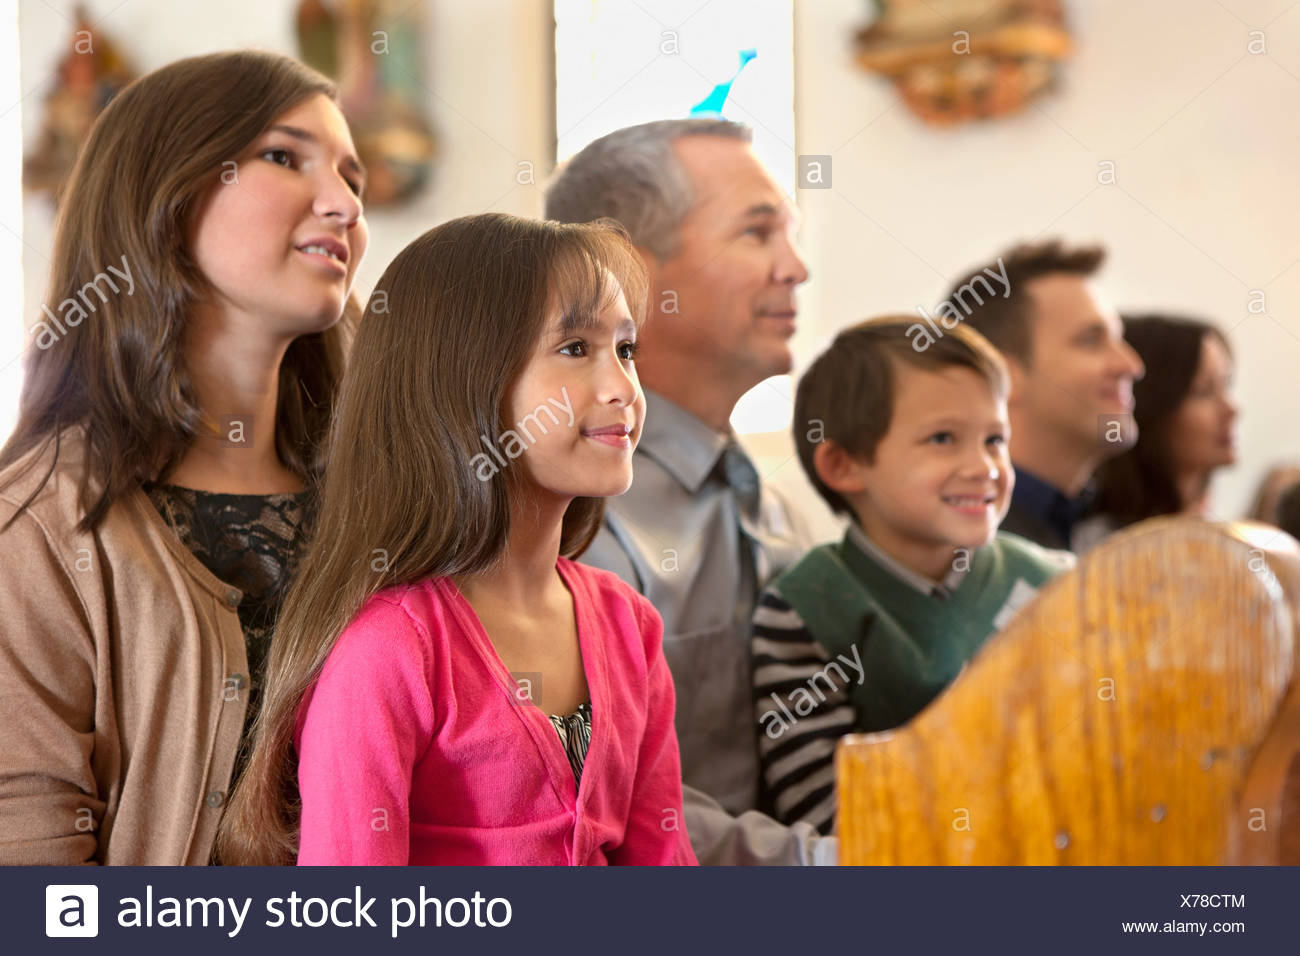 Family sitting together in church - Stock Image